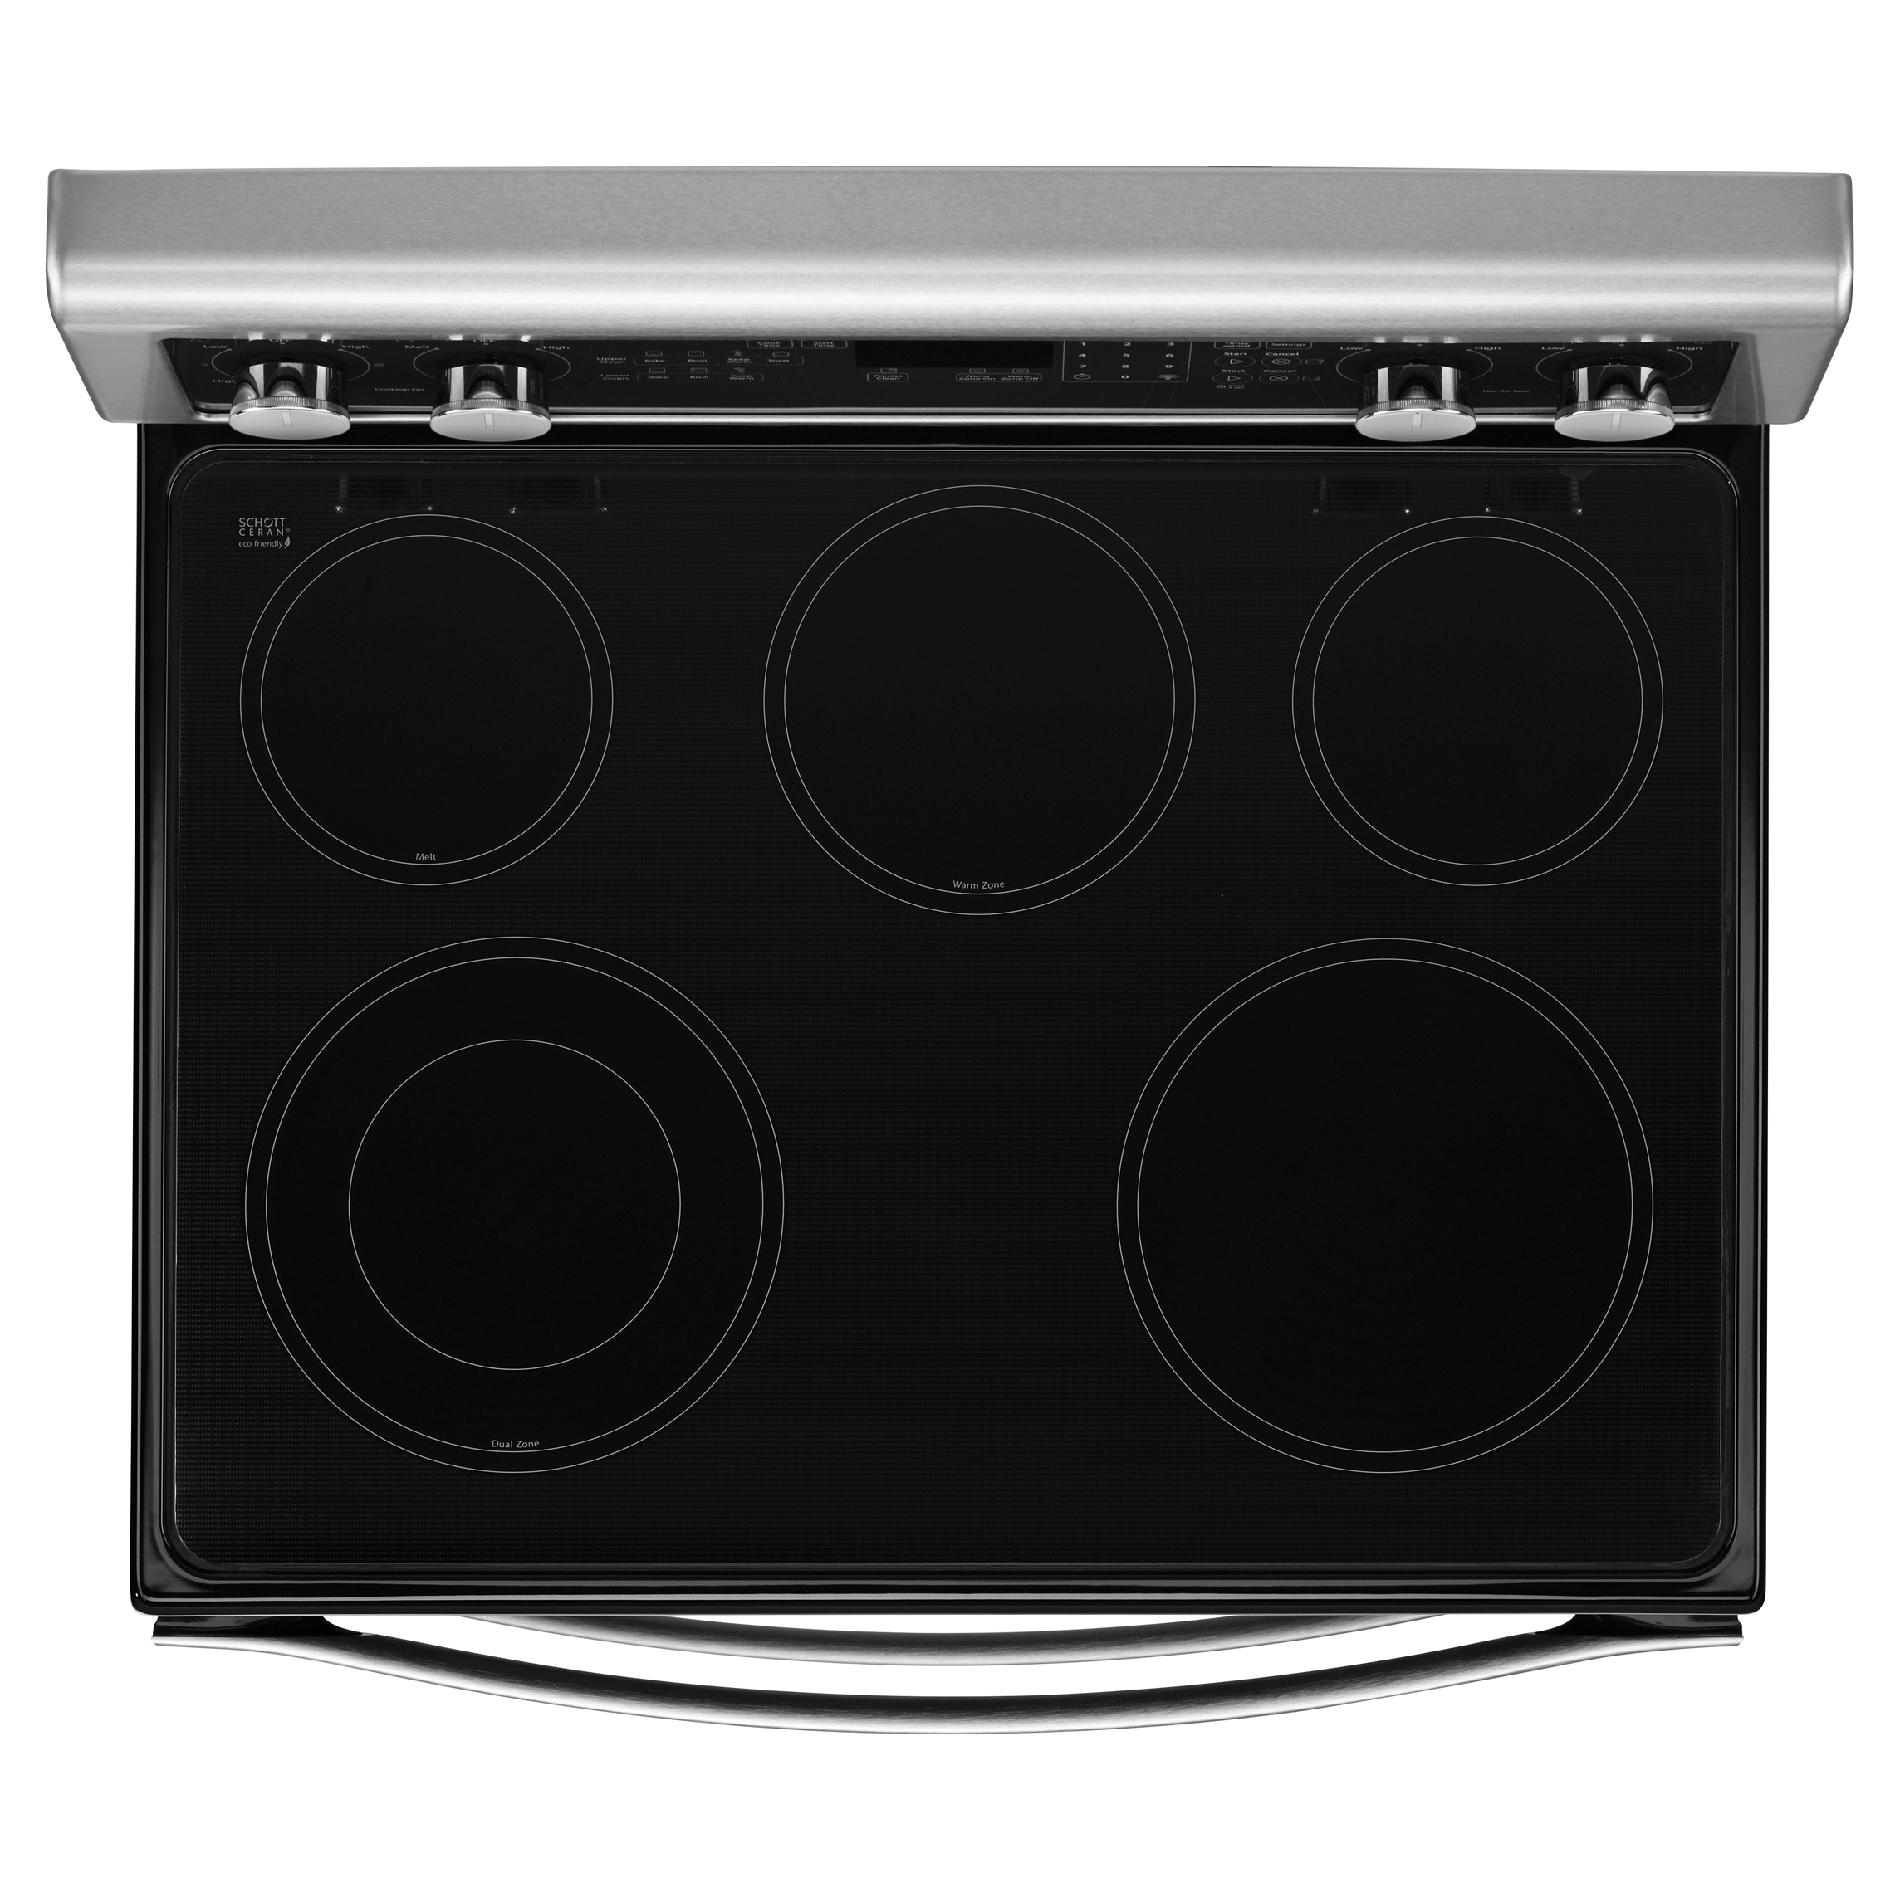 Whirlpool WGE555S0BS 6.7 cu. ft. Electric Range w/ AccuBake® System - Stainless Steel